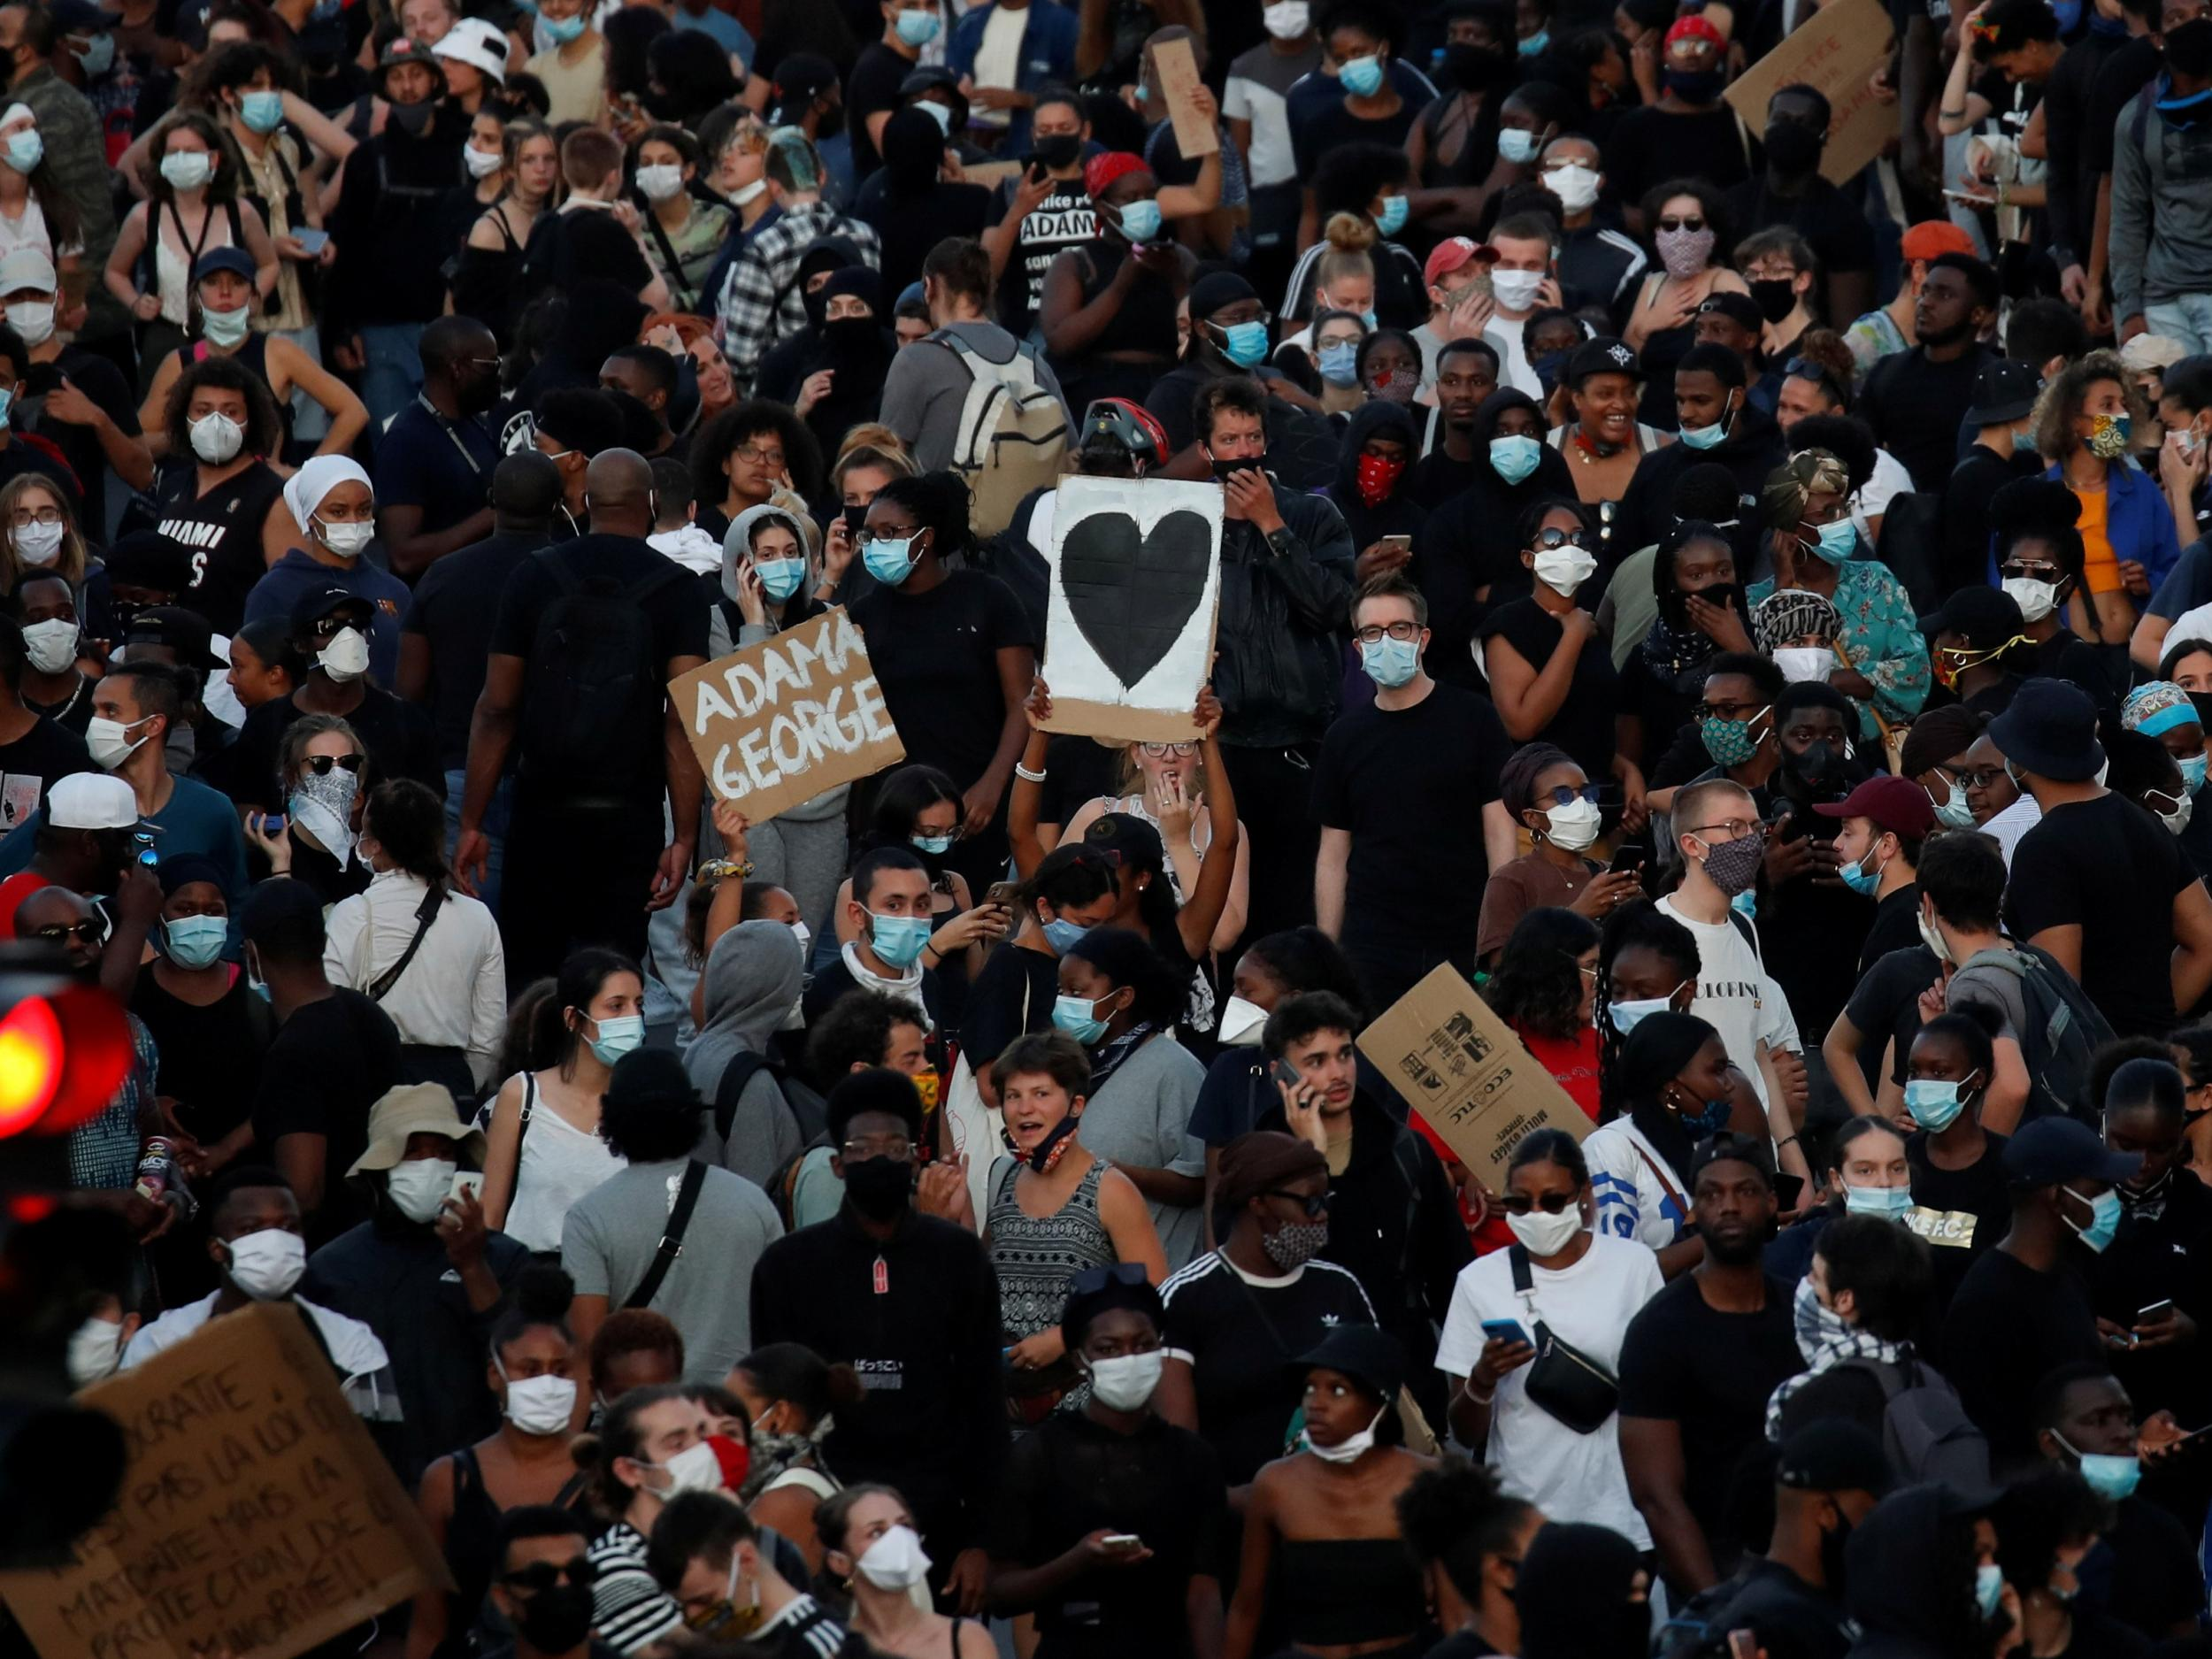 Police ban several protests against police brutality in central Paris thumbnail